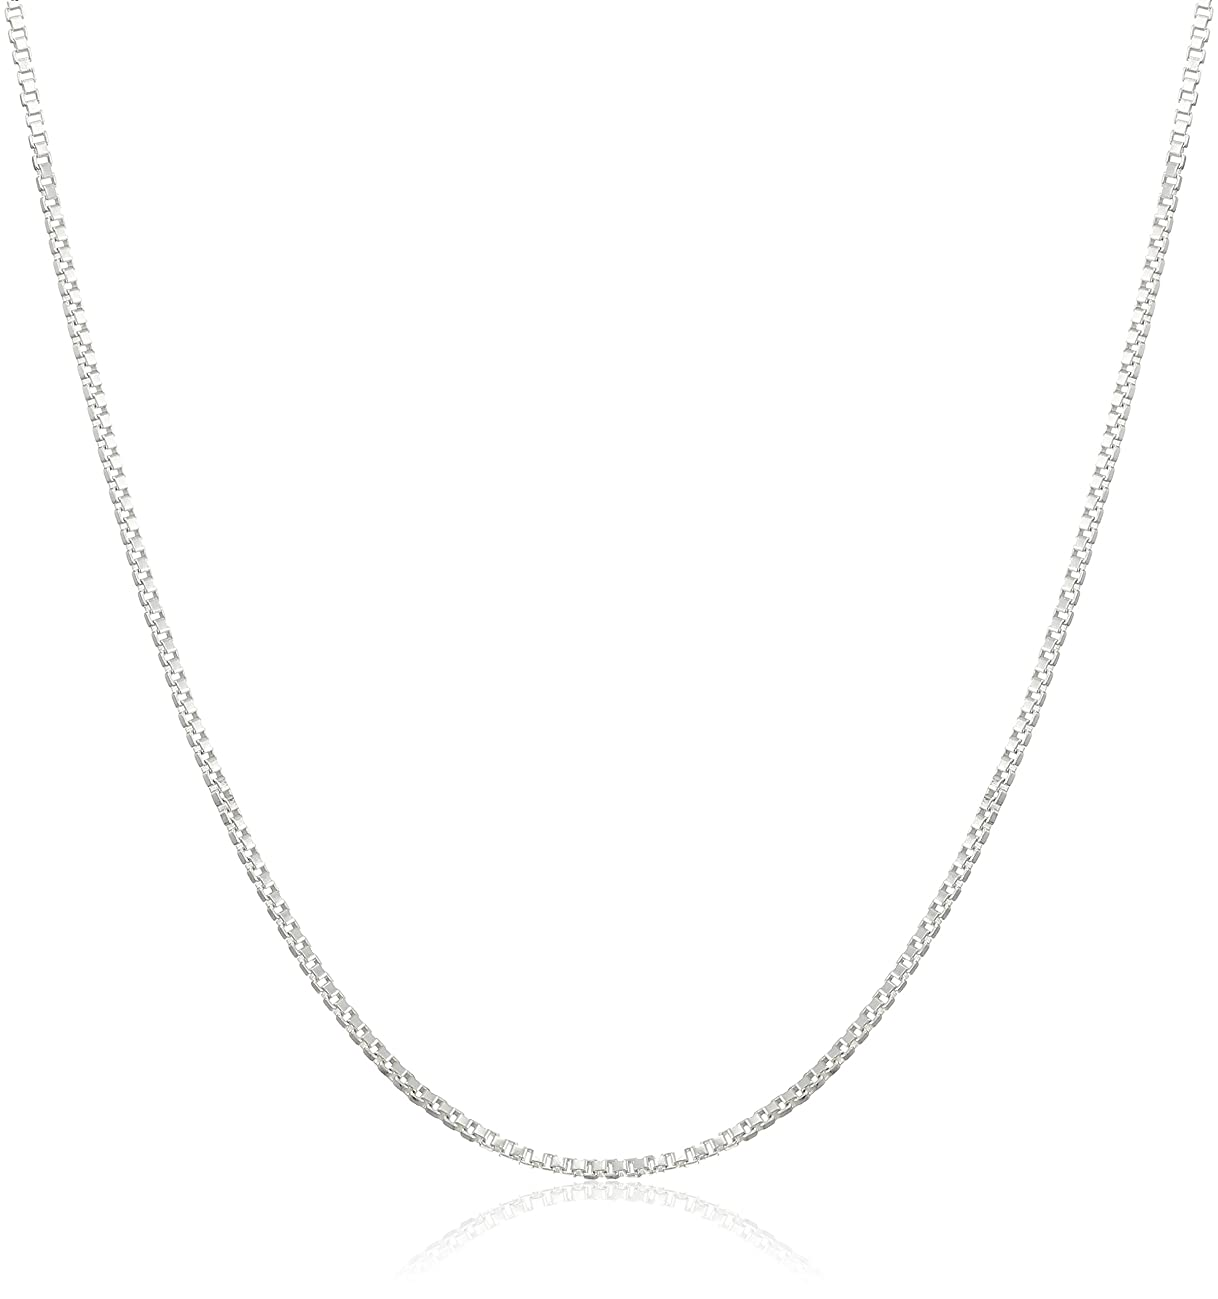 925 Sterling Silver .8MM Box Chain - Italian Necklace - Super Thin & Strong - FREE Gift w/Order 16